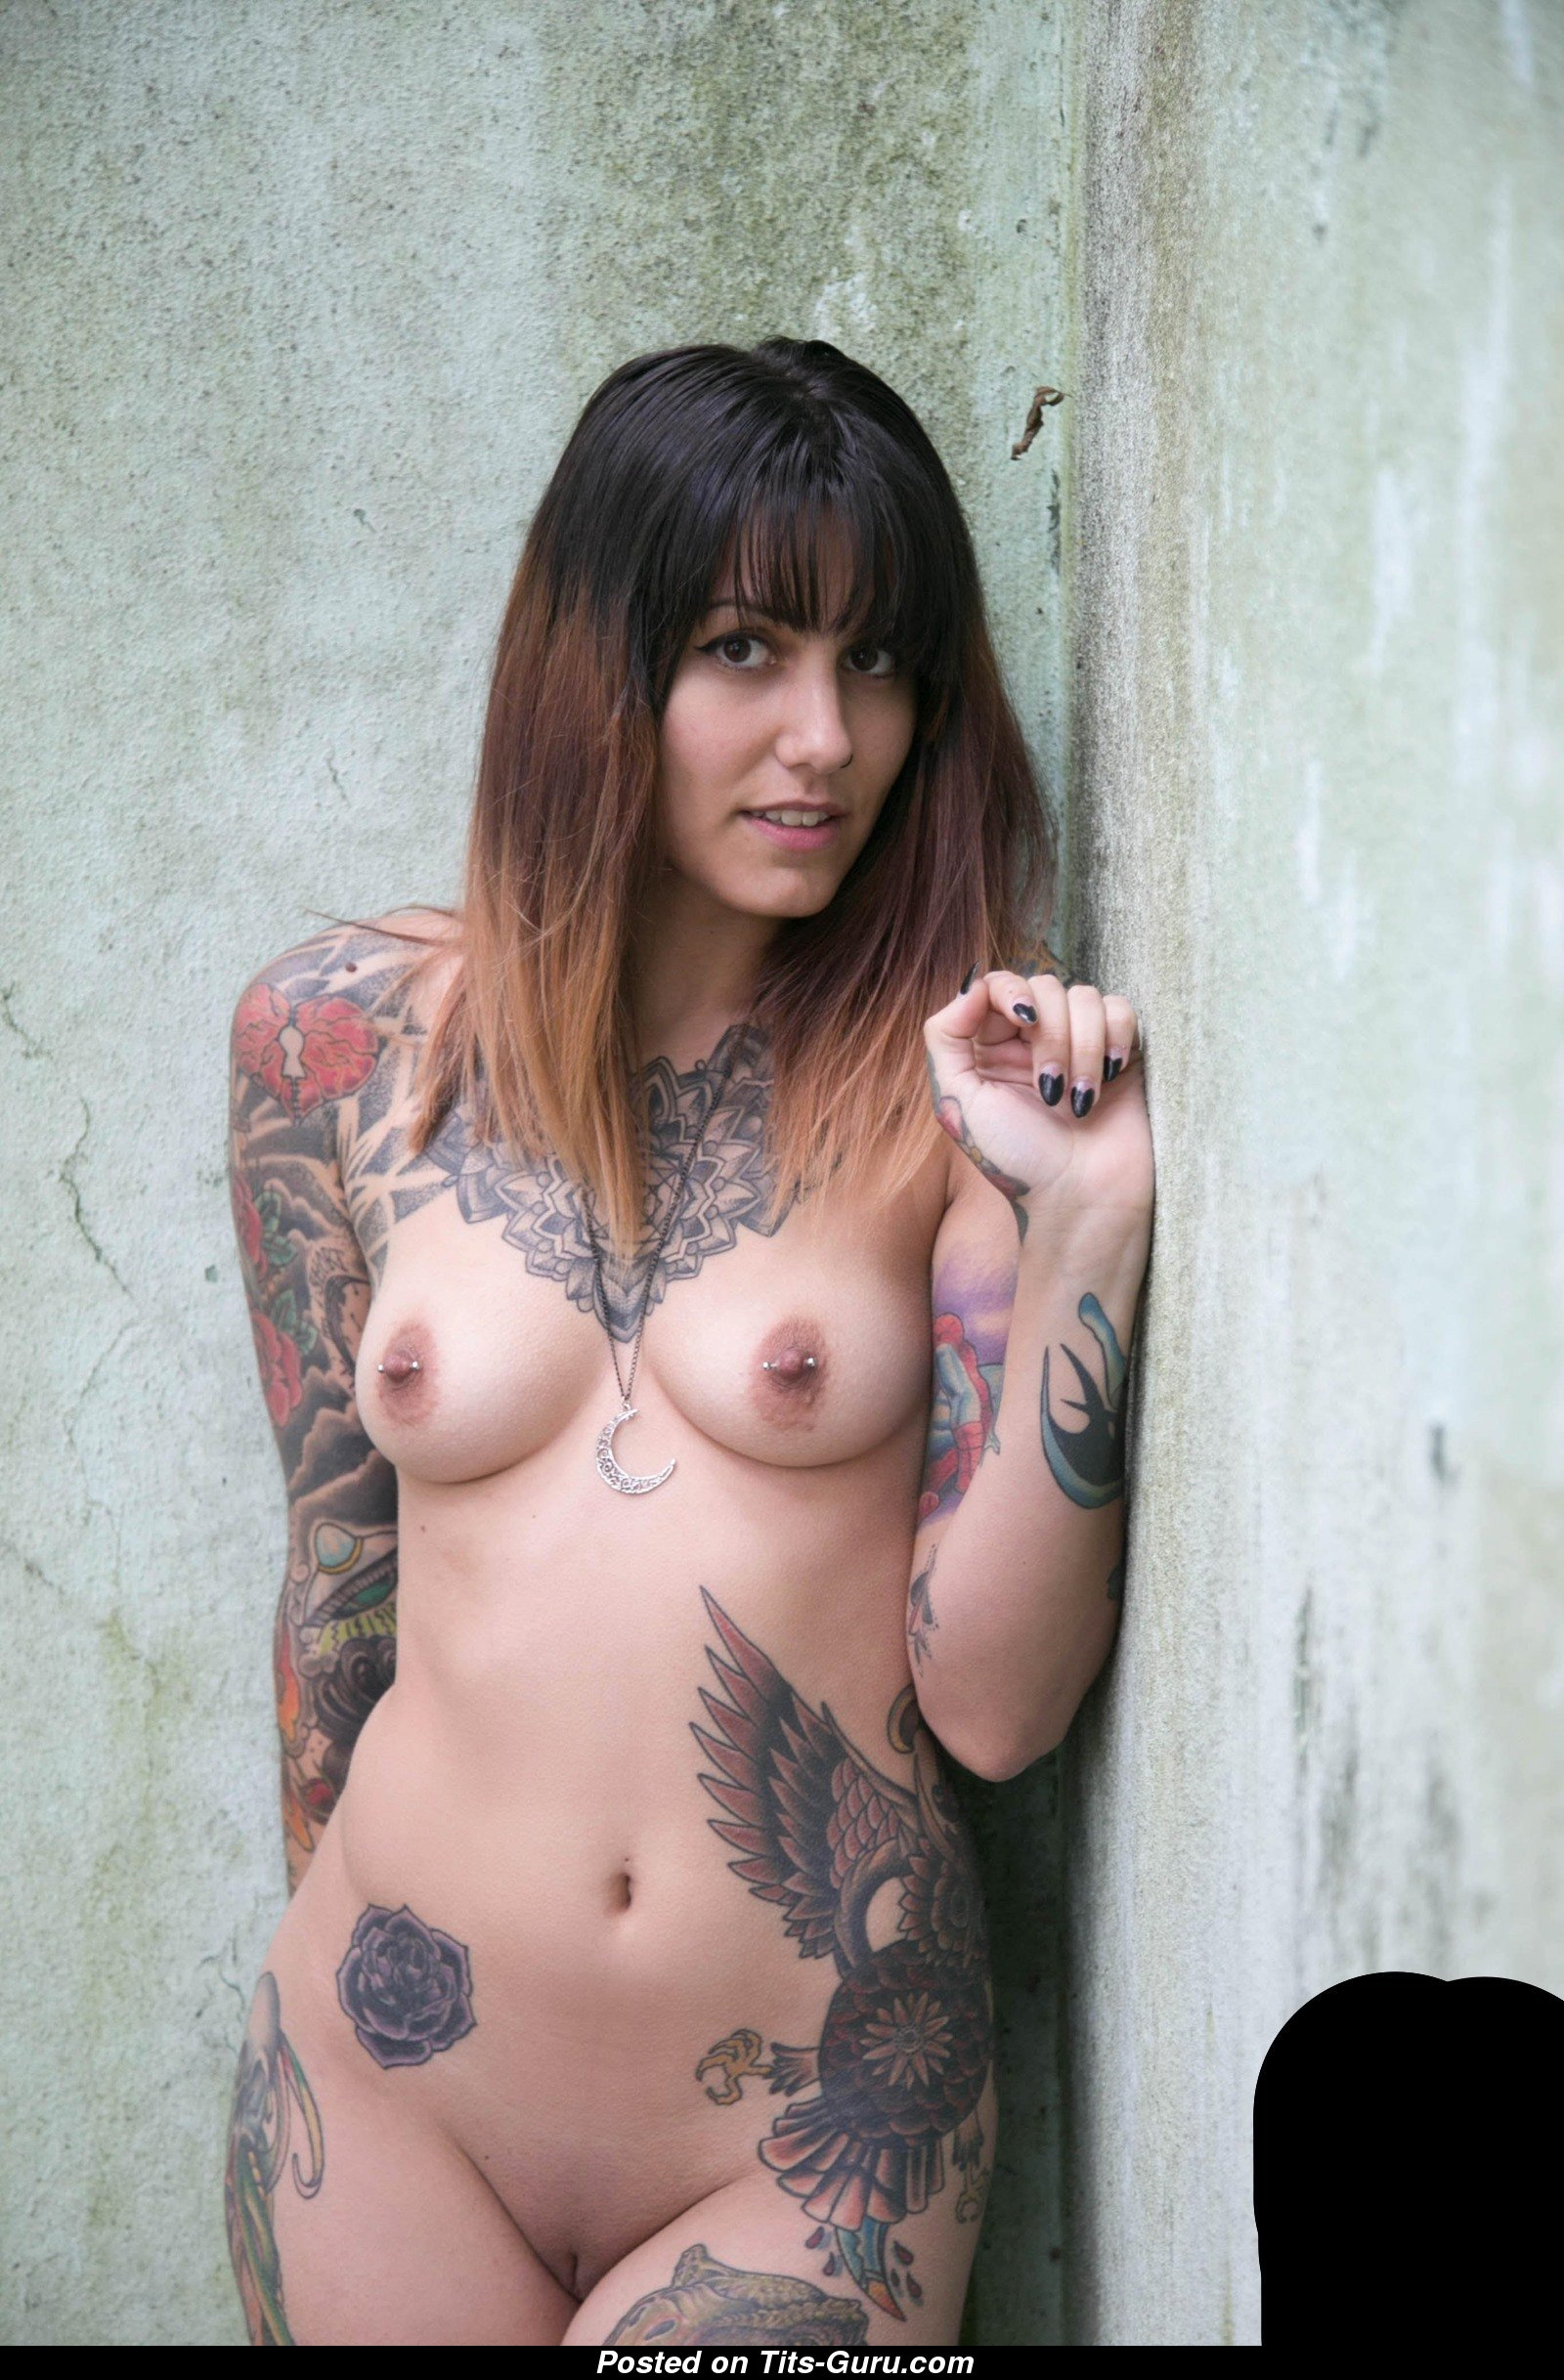 Splendid Chick with Splendid Open Natural Average Tots, Weird Nipples,  Piercing & Tattoo (Hd Porn Photo)